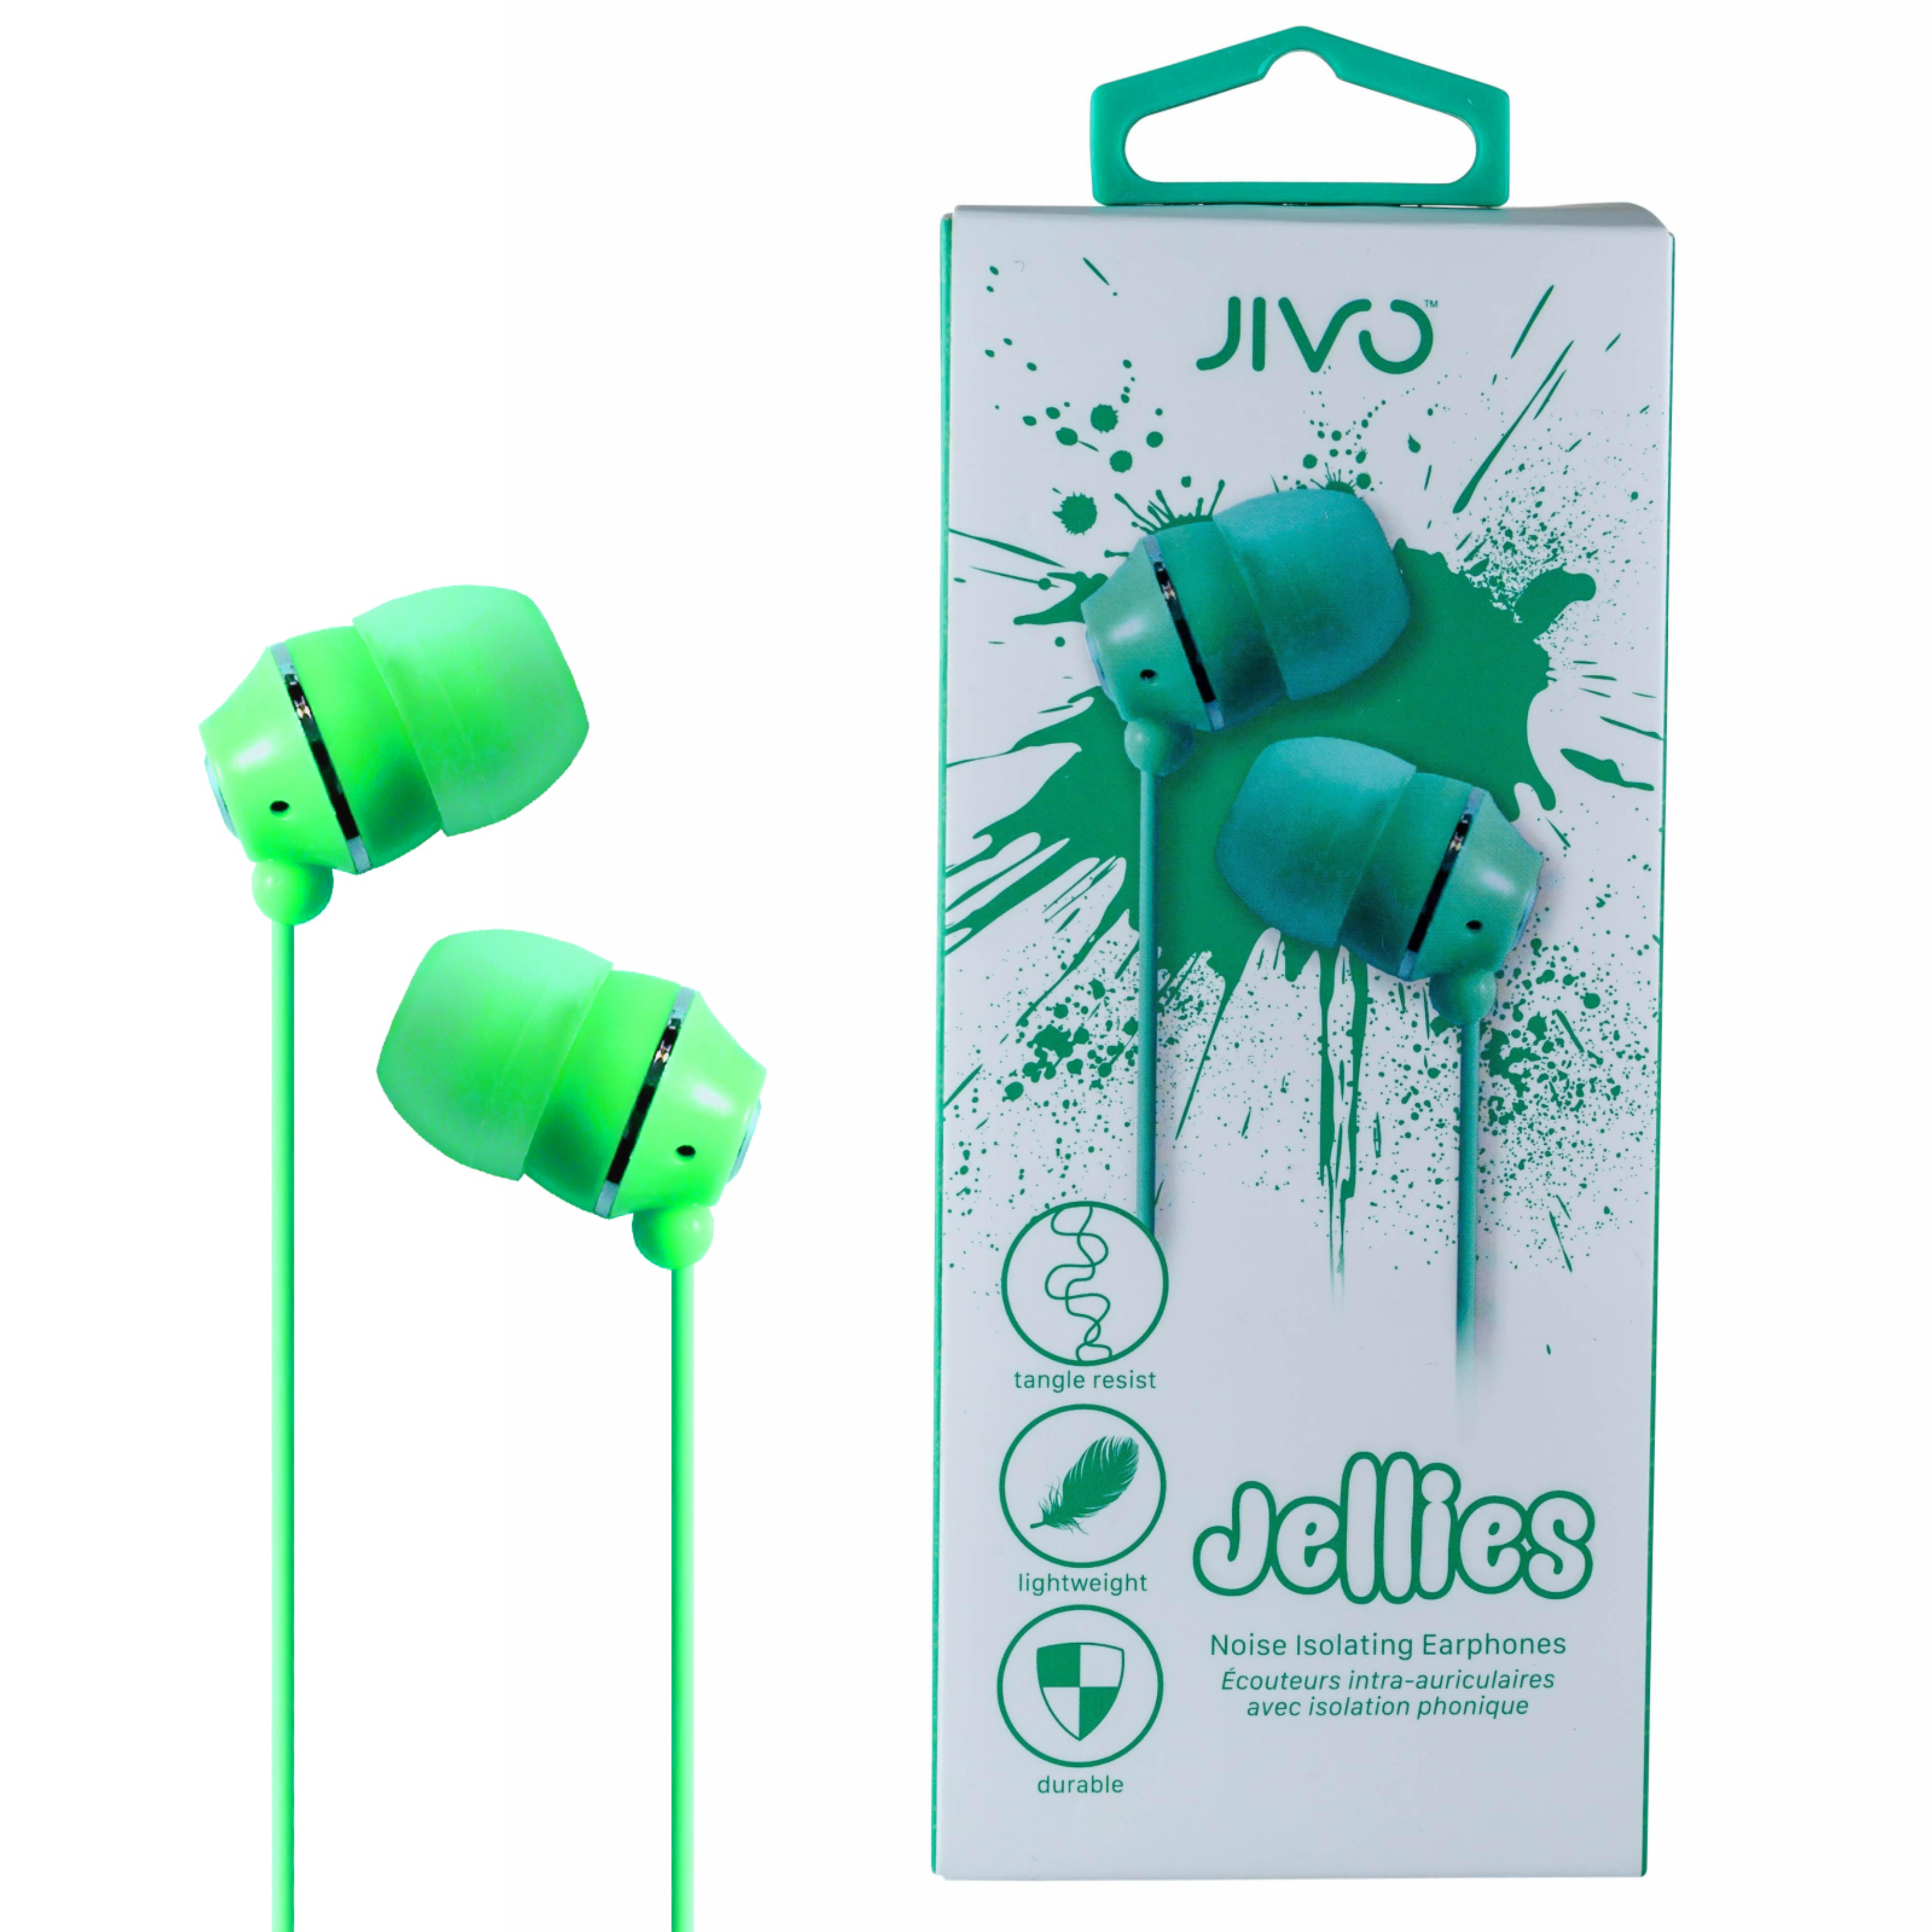 Jivo JI-1060G Jellies In-Ear Noise Isolating Earphone|Soft & Comfy|Light weight|Apple|New